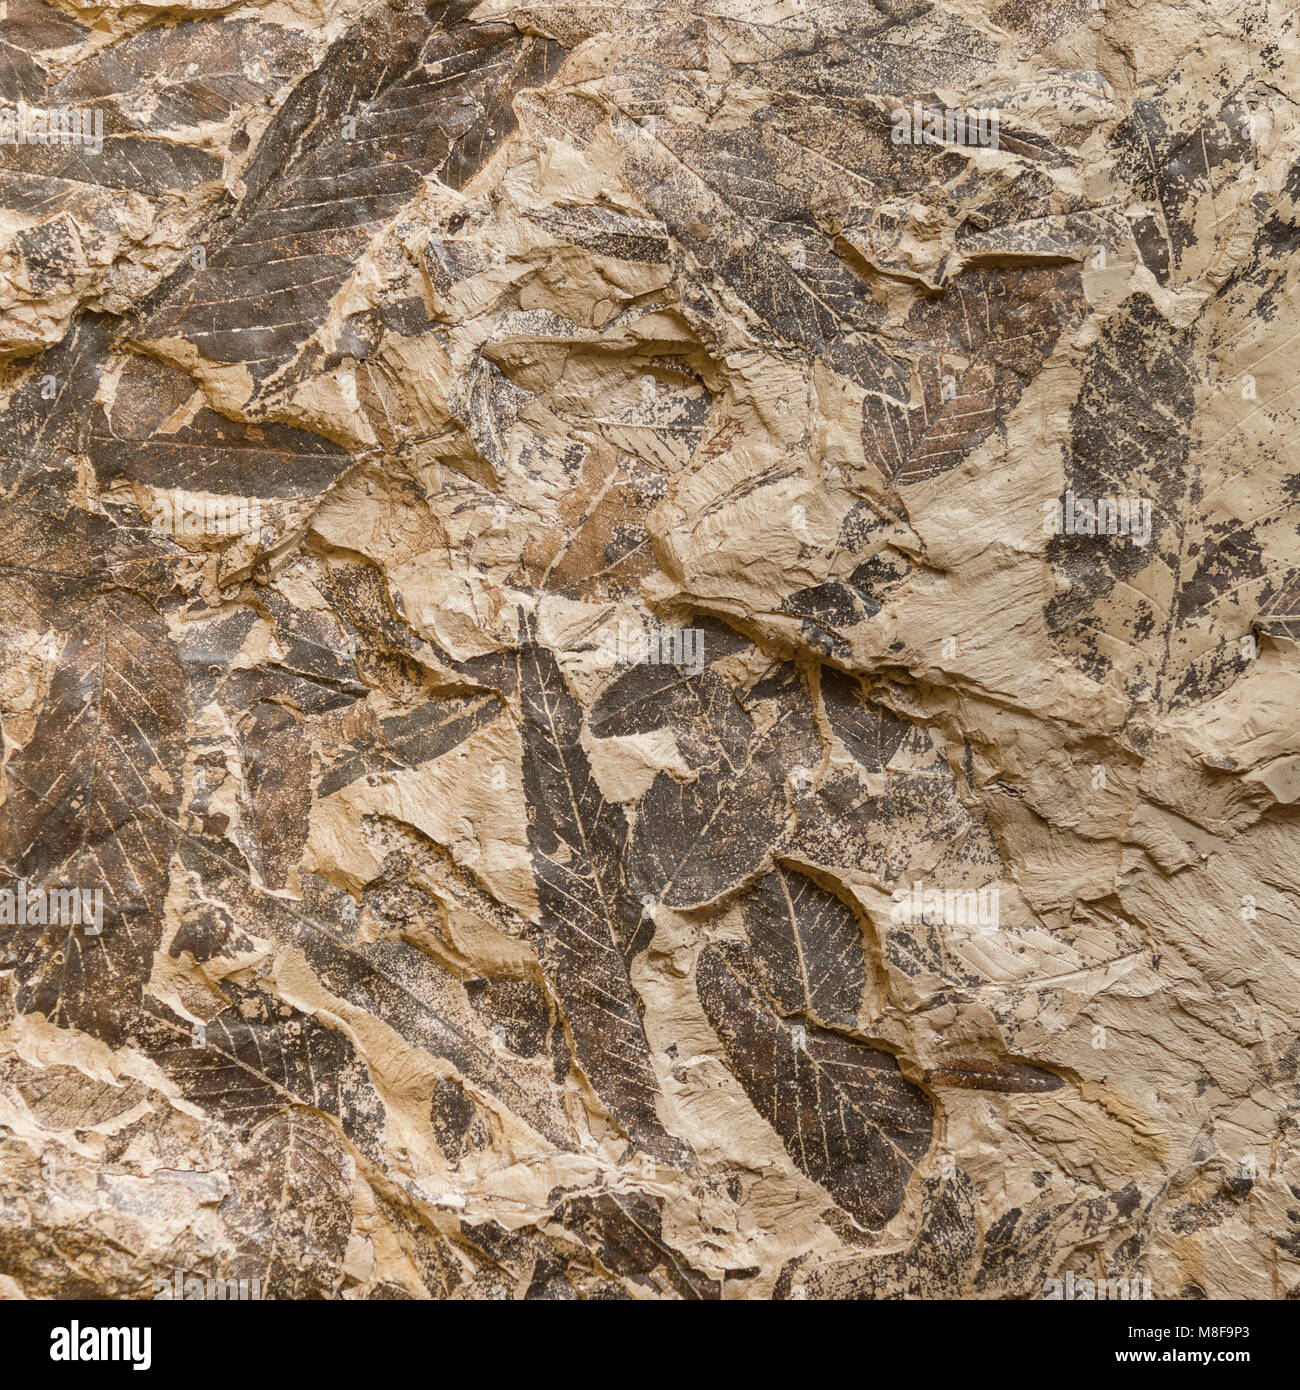 Imprint of fossil prehistoric plant leaves on stone Stock Photo